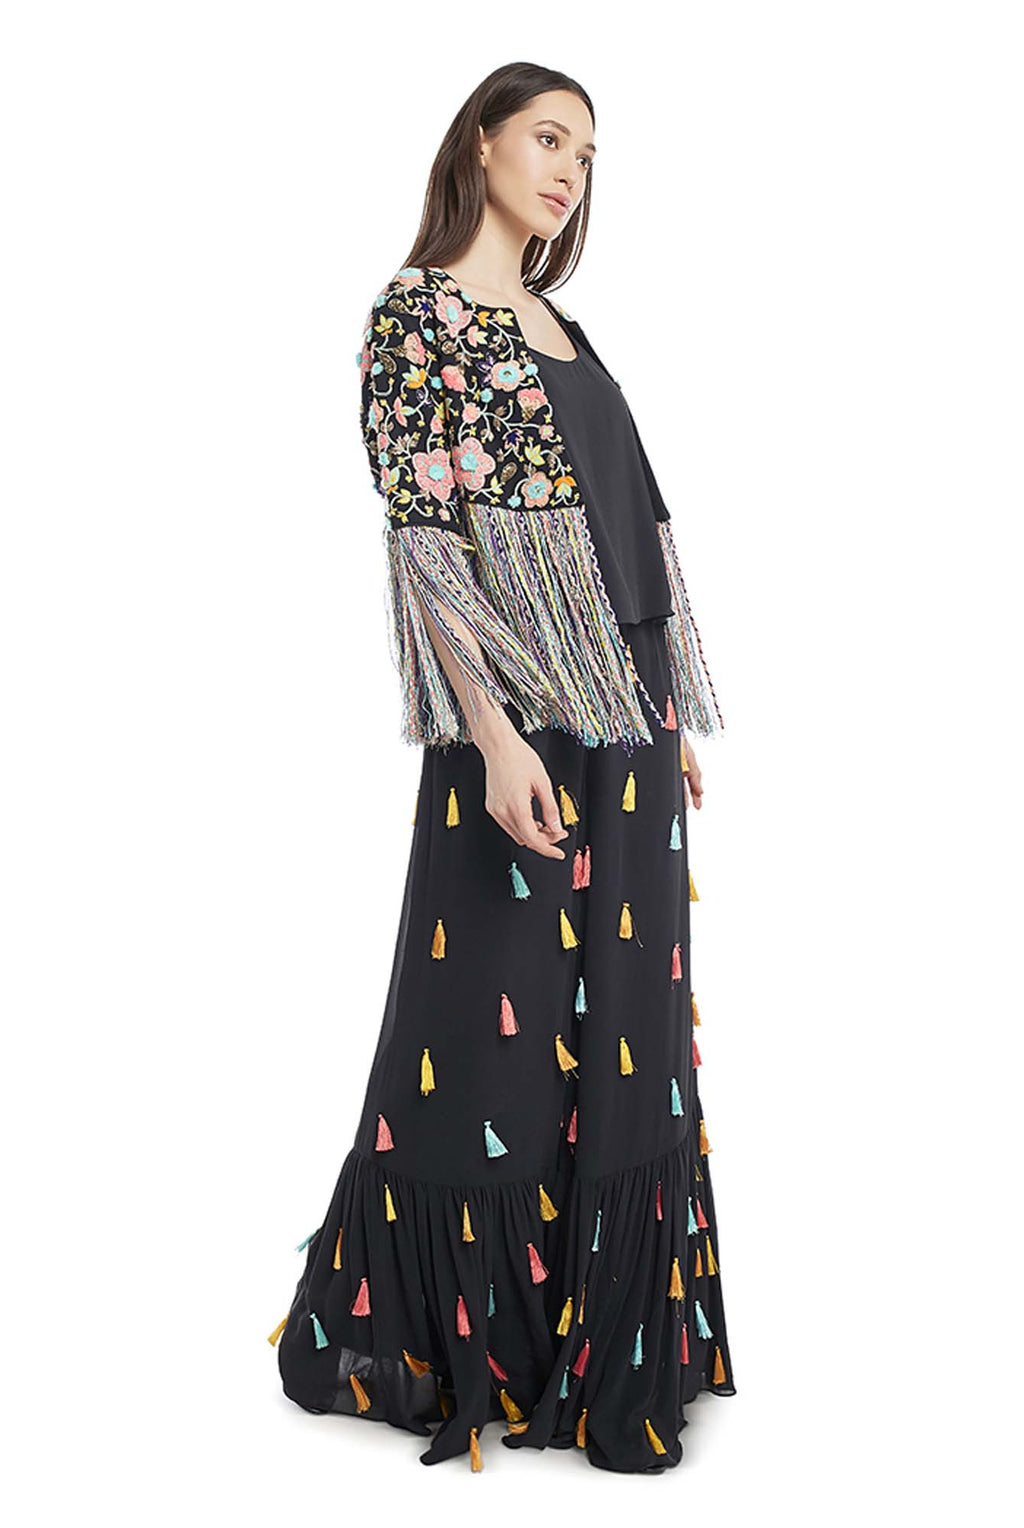 Black Colour Georgette Choli with Jacket and Frill Palazzo - Riviera Closet